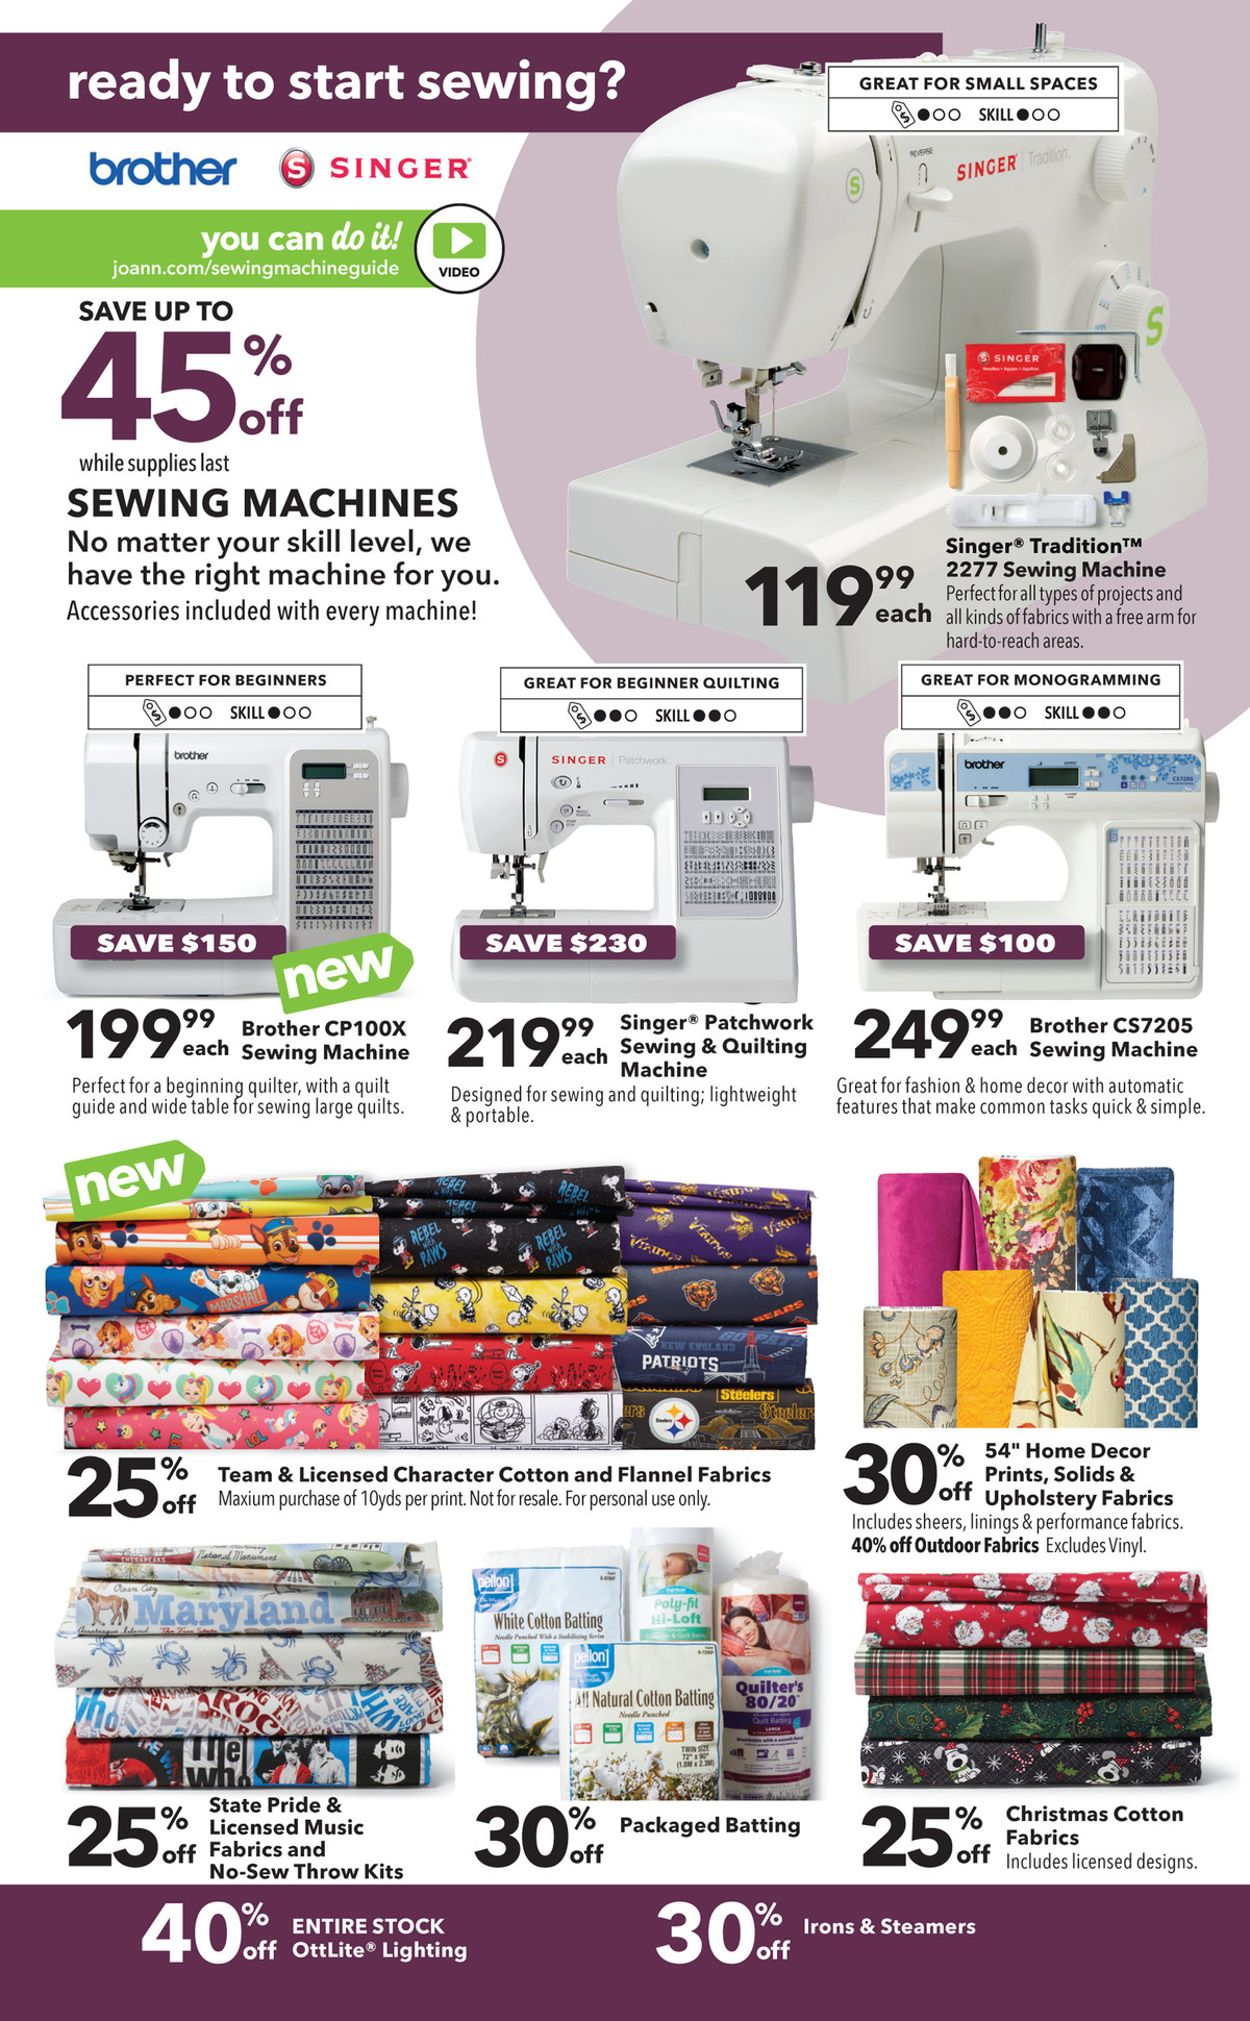 Joann Sewing Machines : joann, sewing, machines, Jo-Ann, Current, Weekly, 10/15, 10/31/2020, Frequent-ads.com